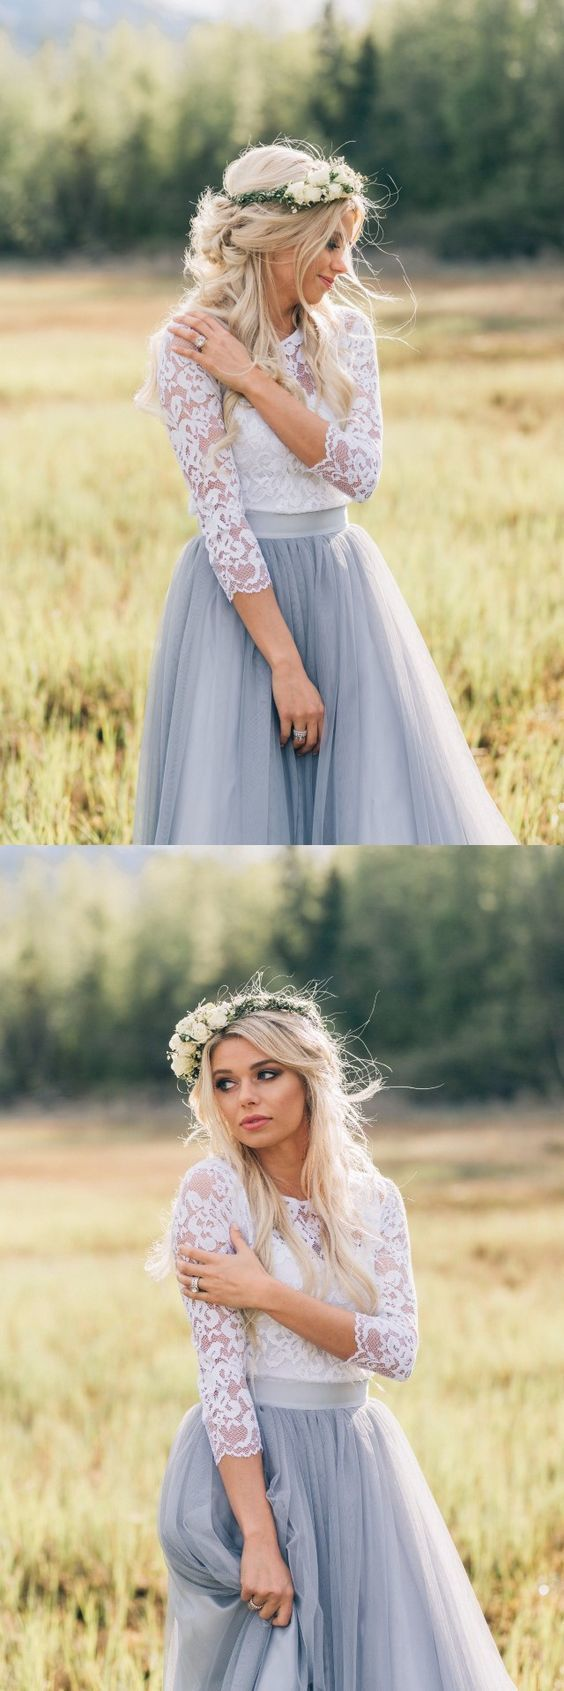 A-Line 3/4 Sleeves Grey Tulle Bridesmaid Dress With Lace 1537